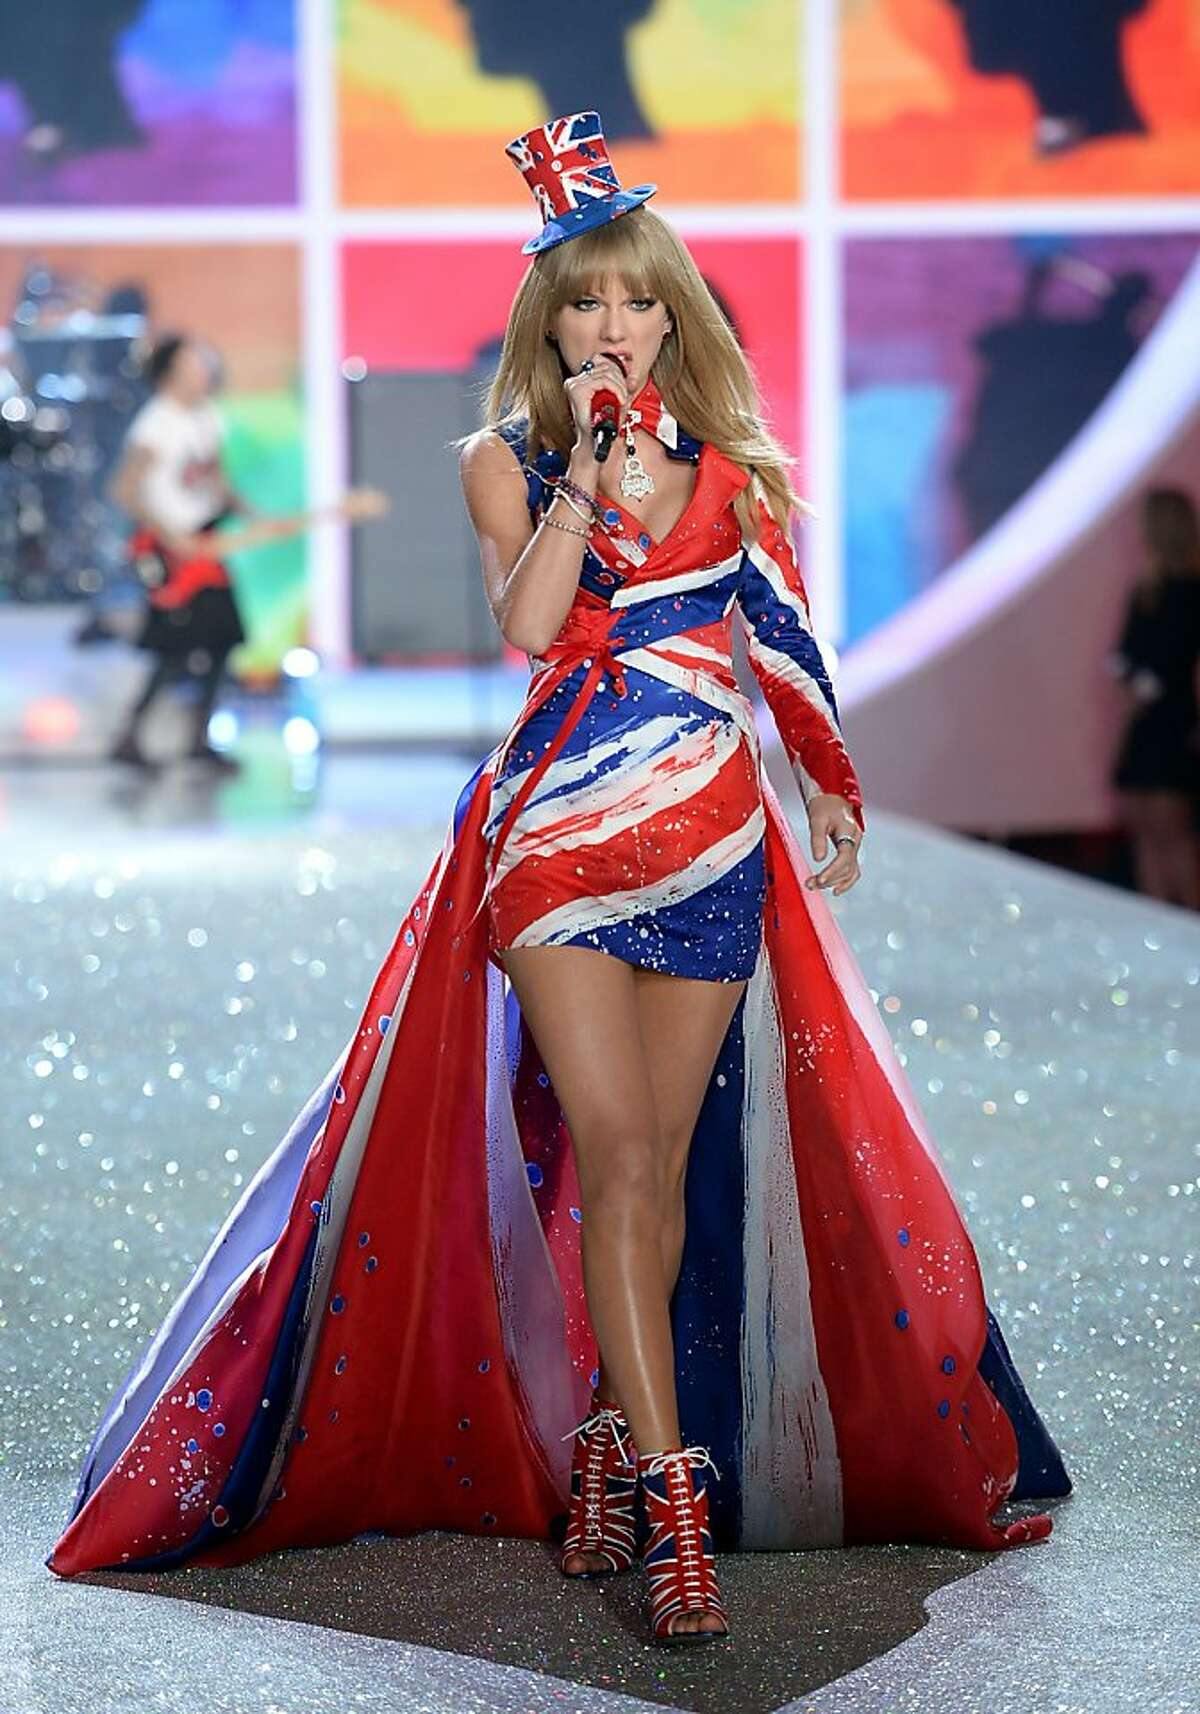 NEW YORK, NY - NOVEMBER 13: Singer Taylor Swift performs at the 2013 Victoria's Secret Fashion Show at Lexington Avenue Armory on November 13, 2013 in New York City. (Photo by Dimitrios Kambouris/Getty Images for Victoria's Secret)